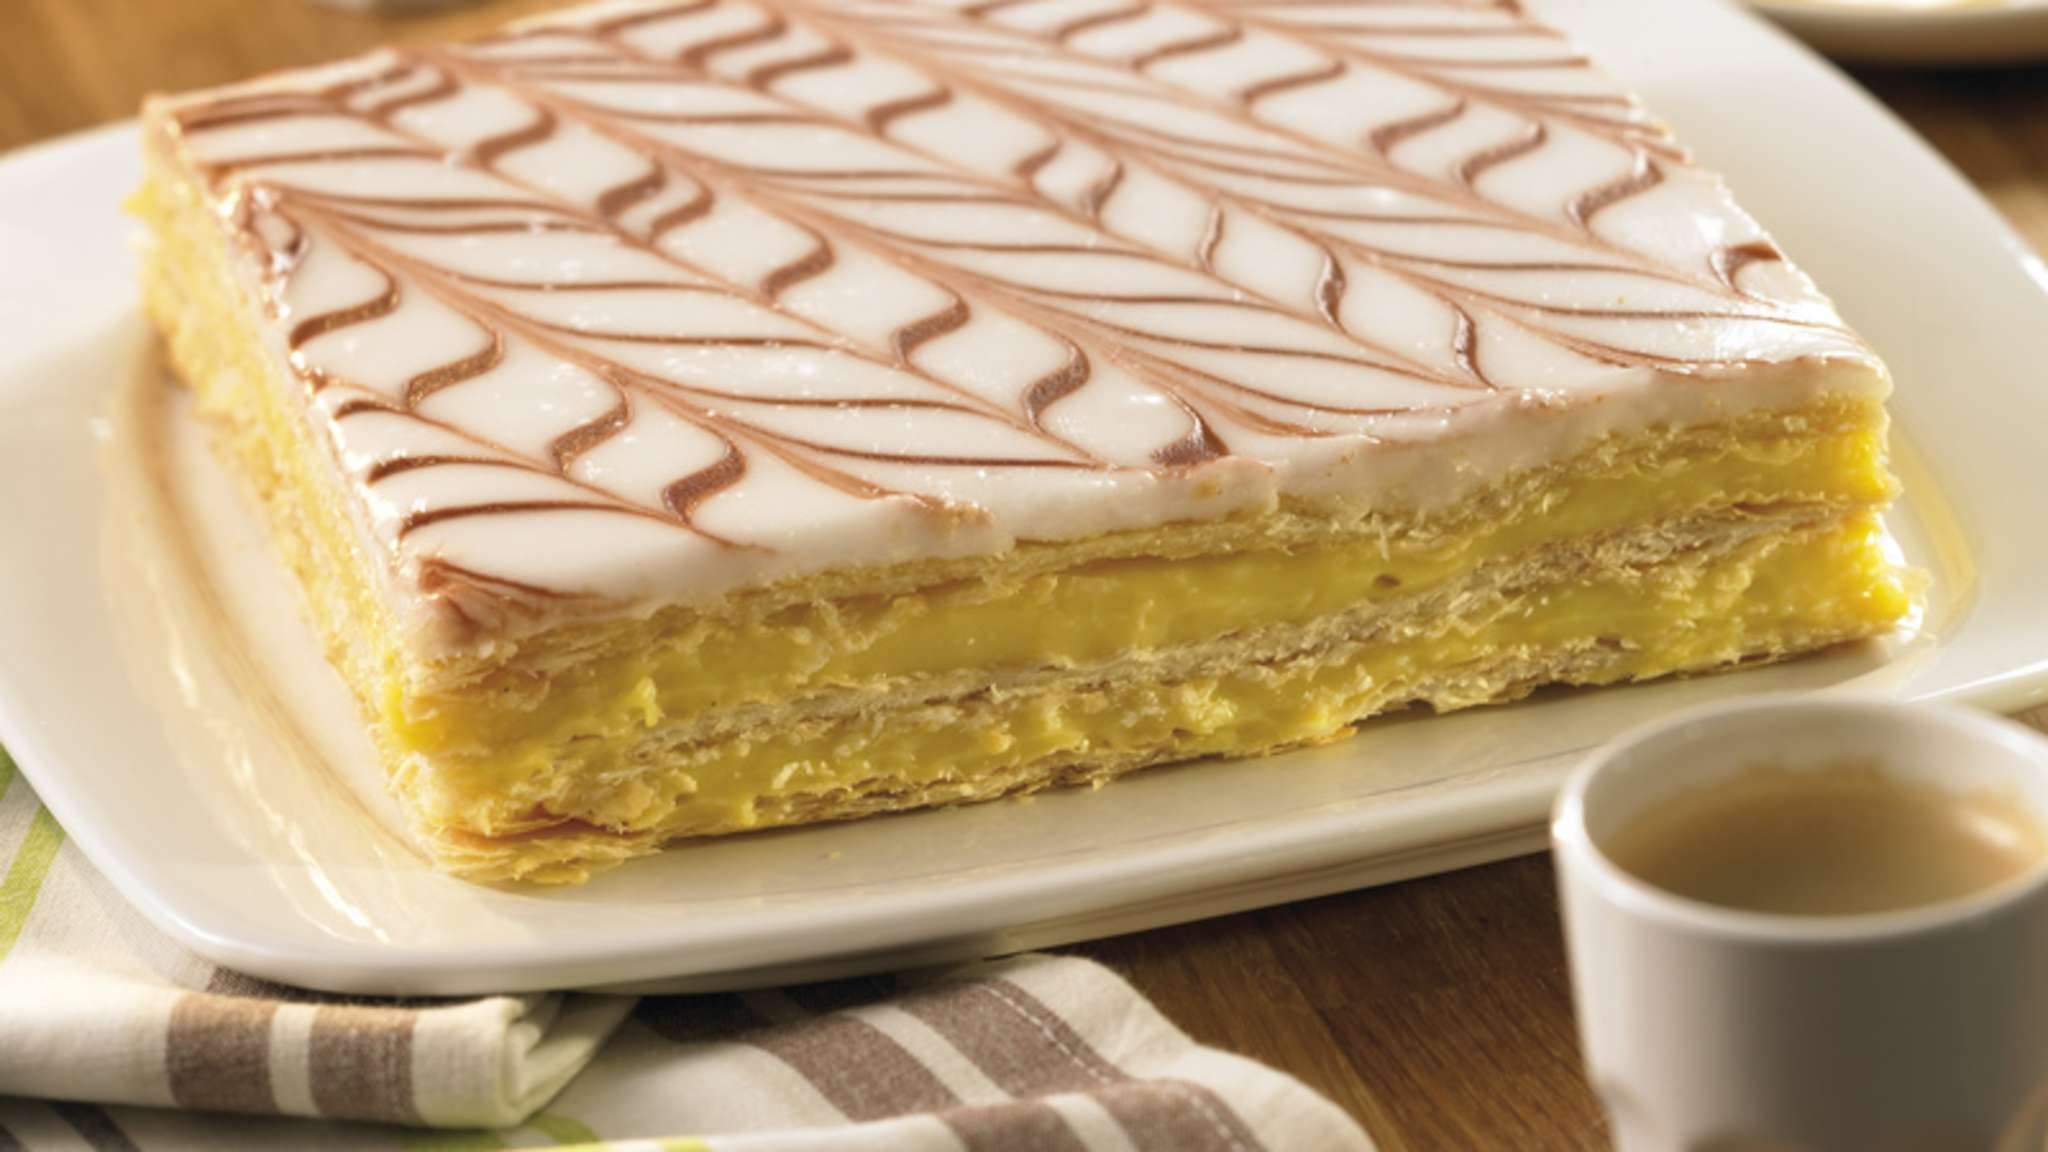 A chacun son millefeuille